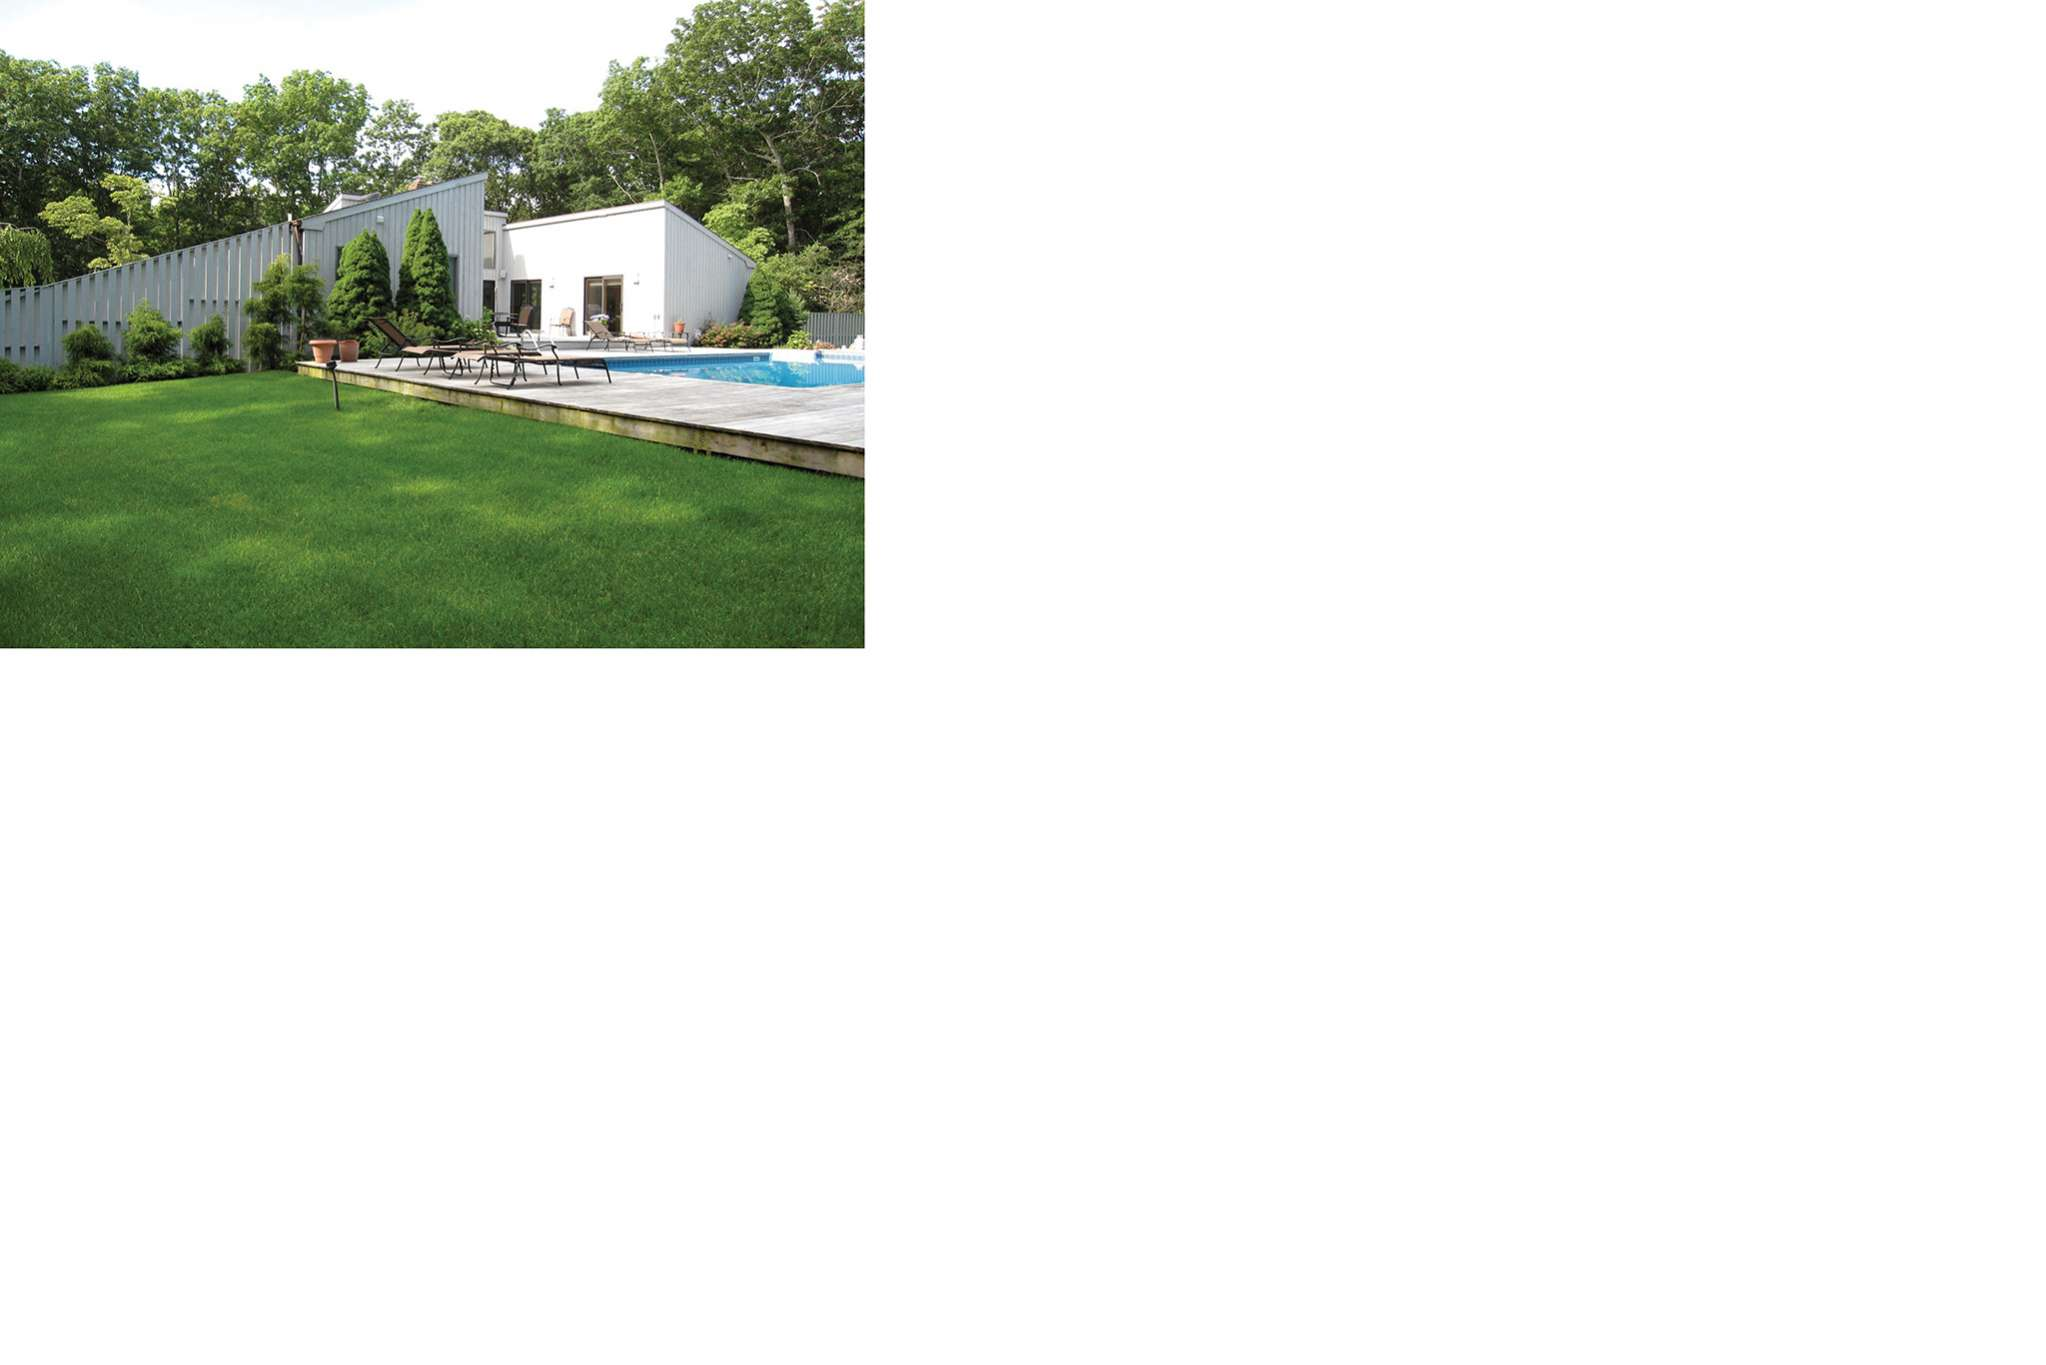 Additional photo for property listing at Deerfield Road Rental  Sag Harbor, New York